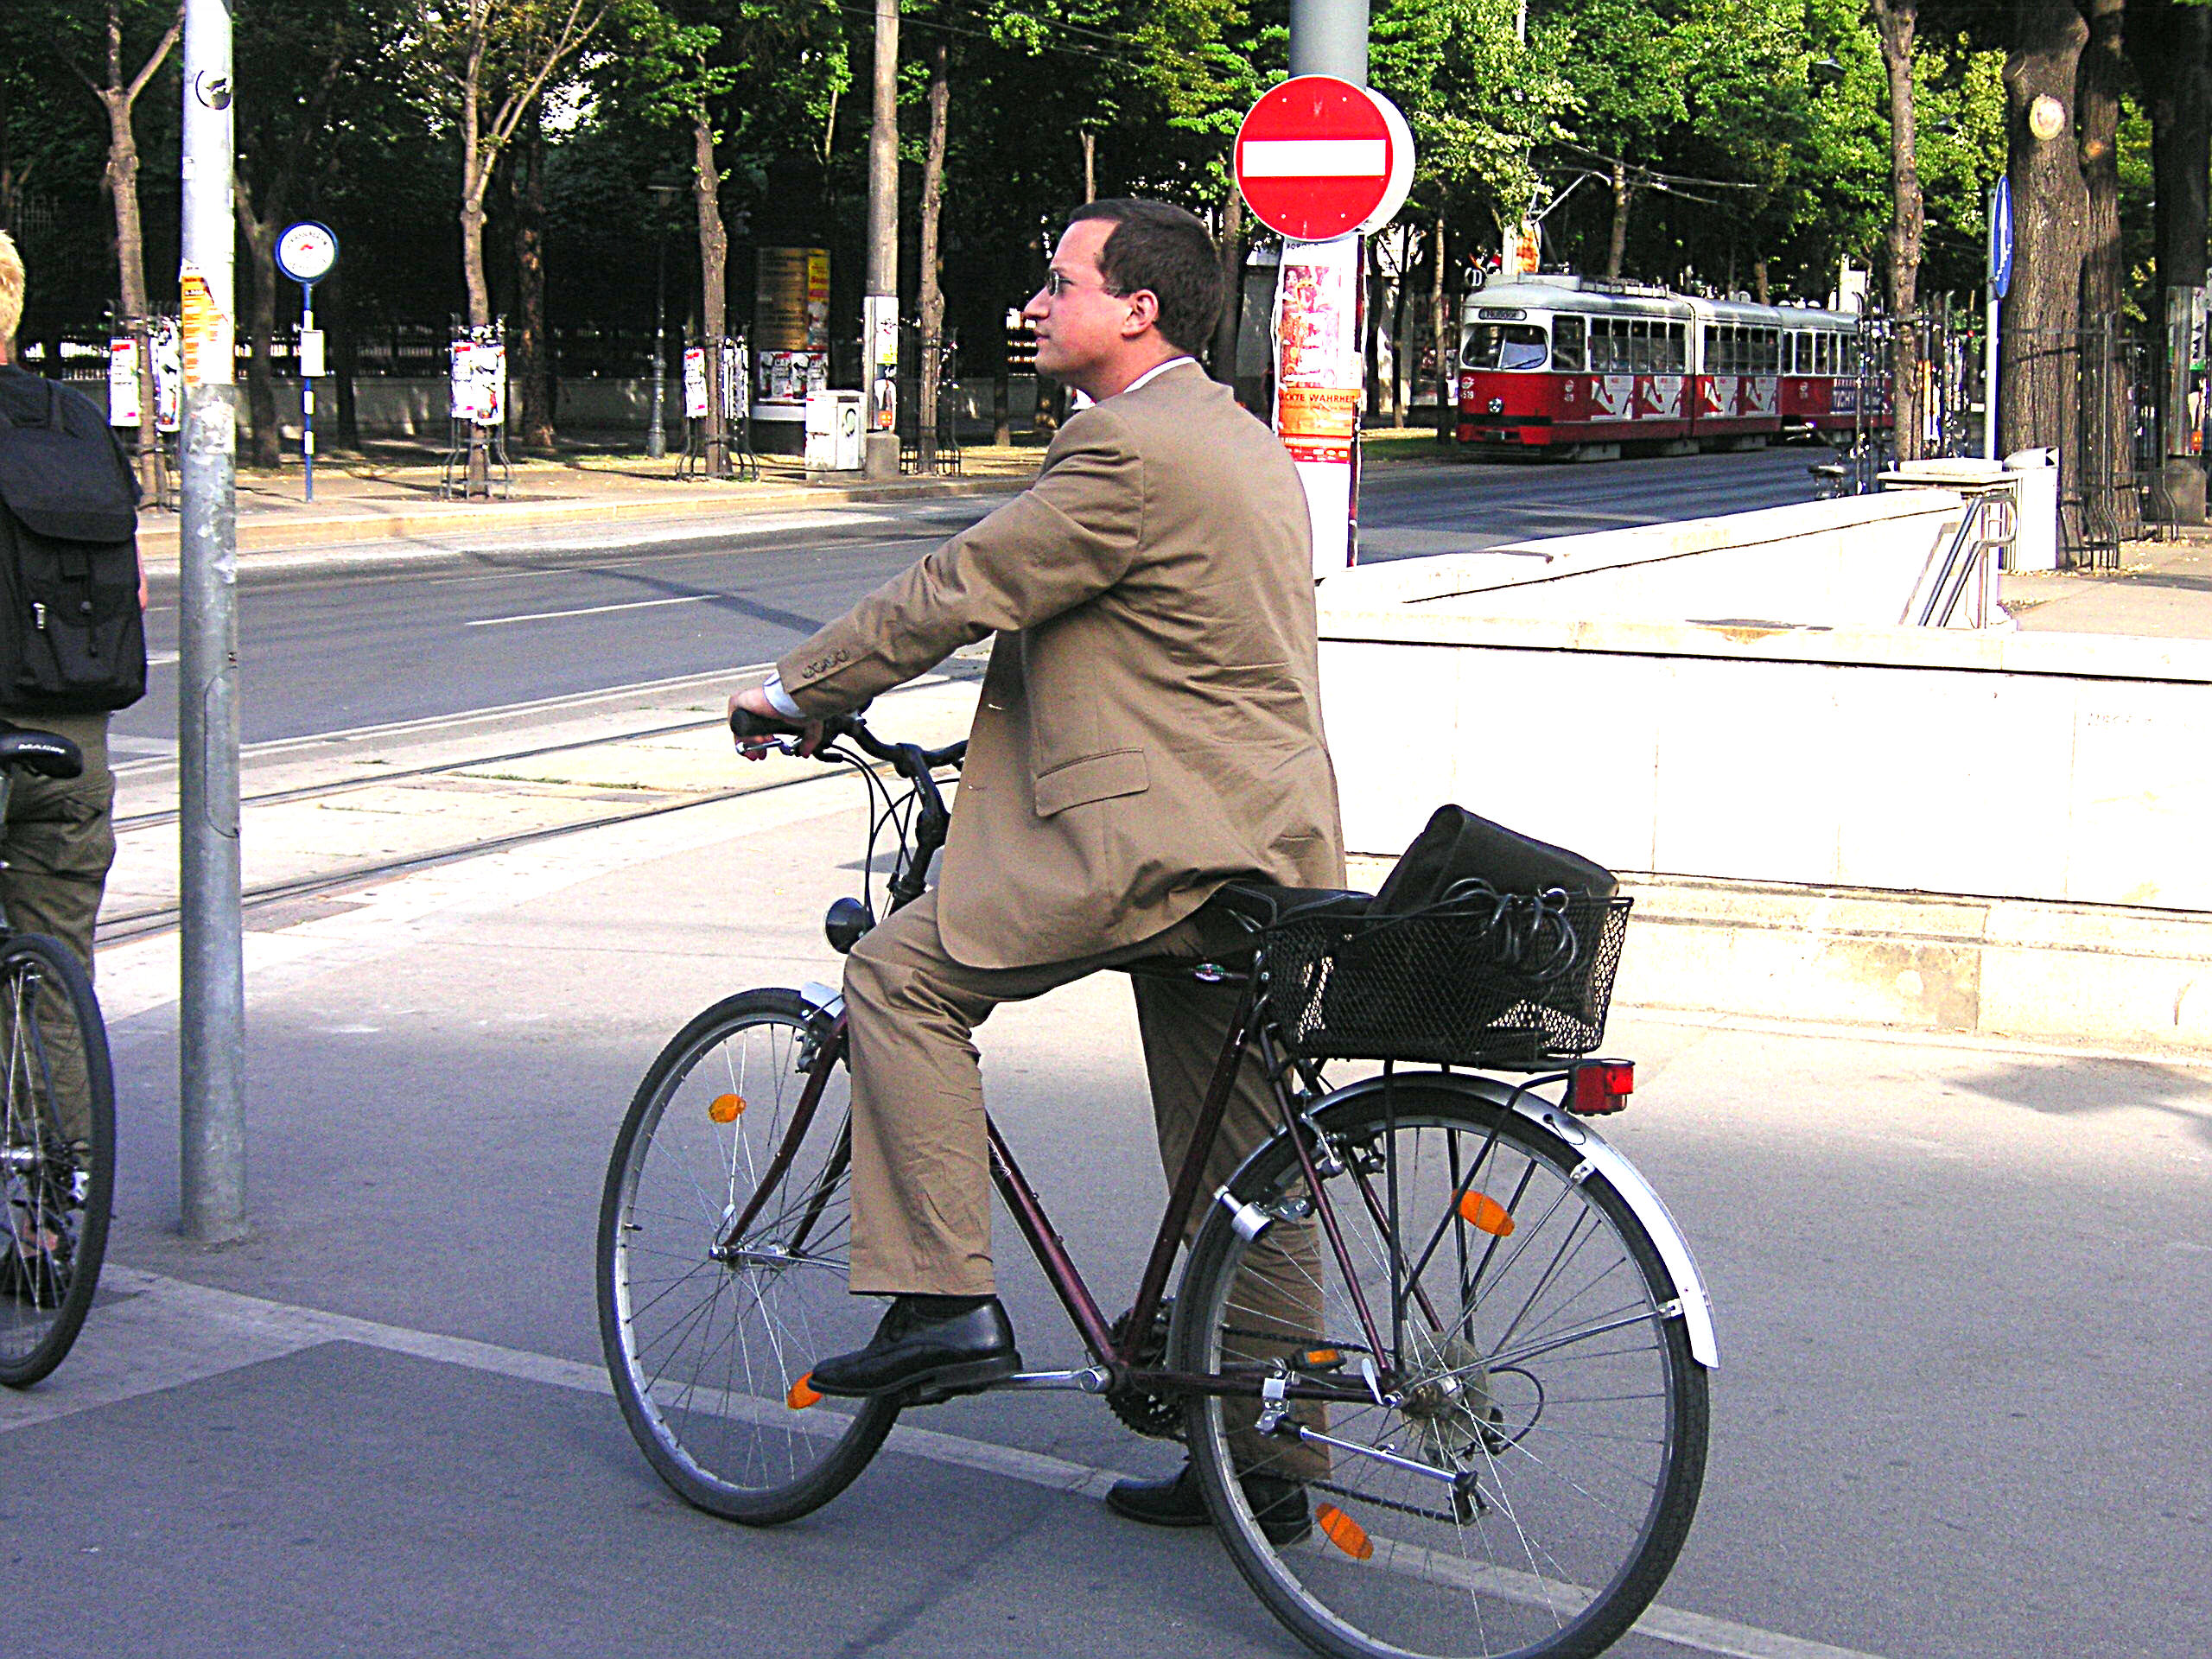 https://upload.wikimedia.org/wikipedia/commons/6/62/Urban_cycling_III.jpg